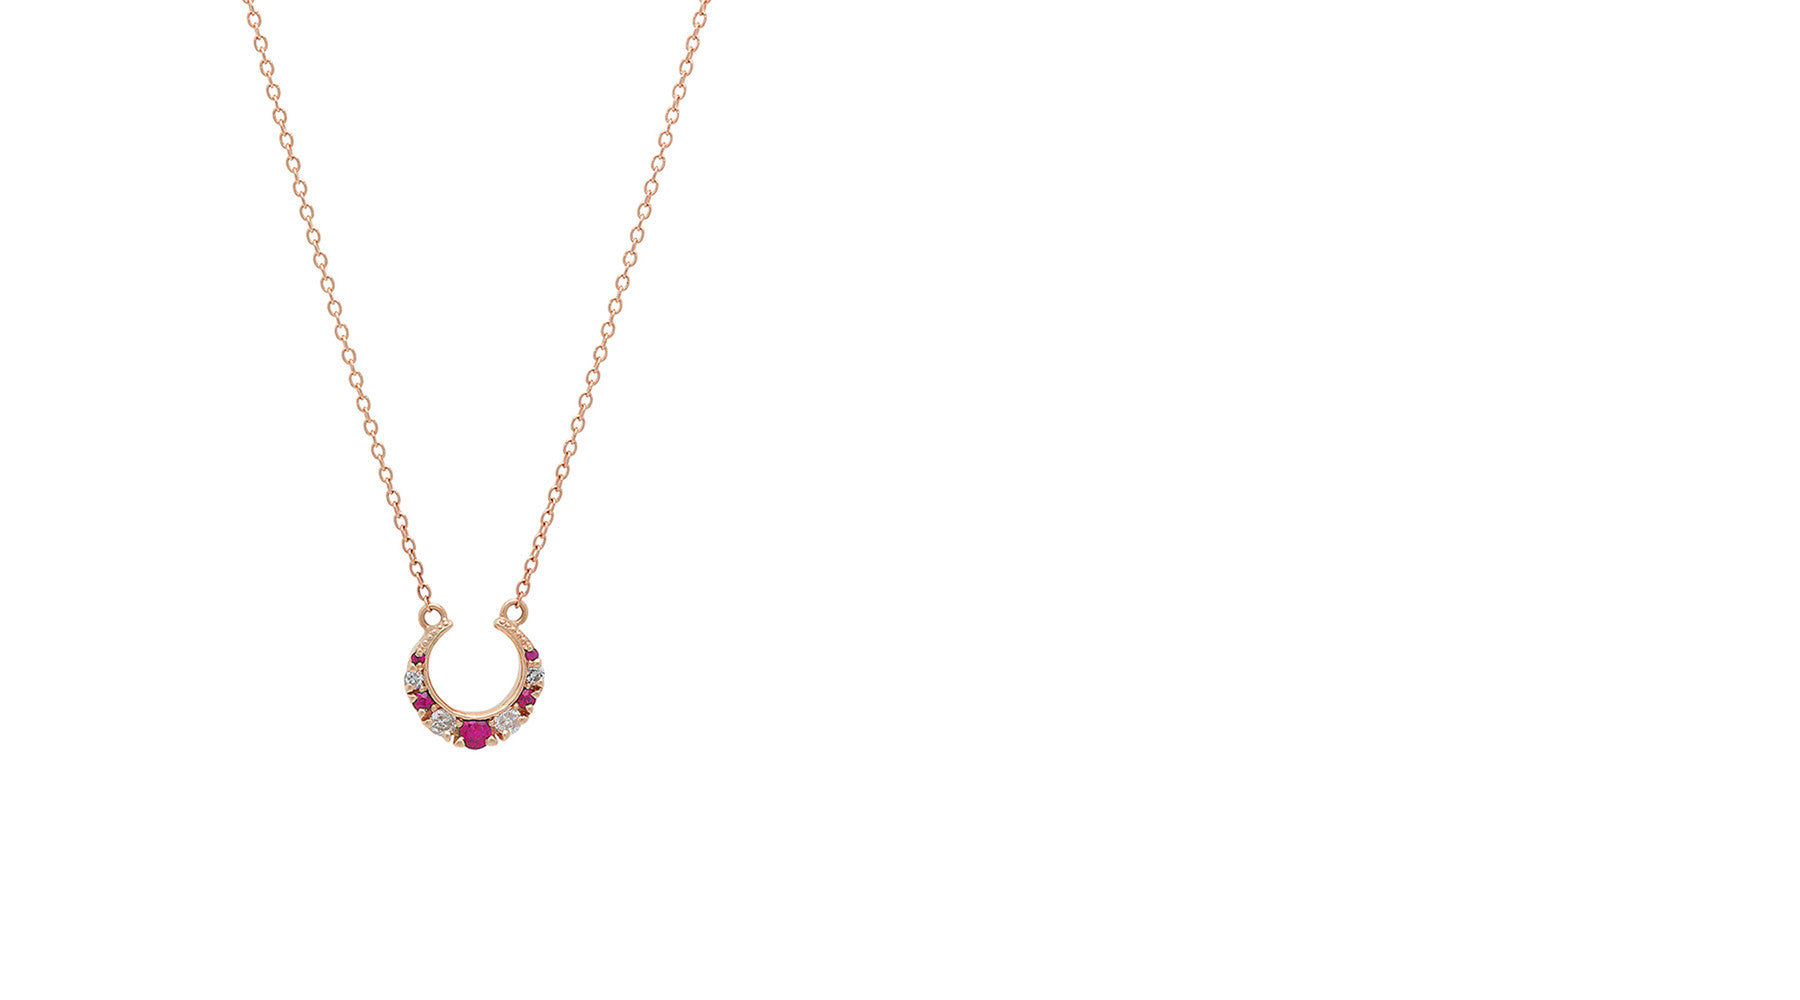 Stone Fox Bride x Iconery Crescent Diamond and Ruby Necklace